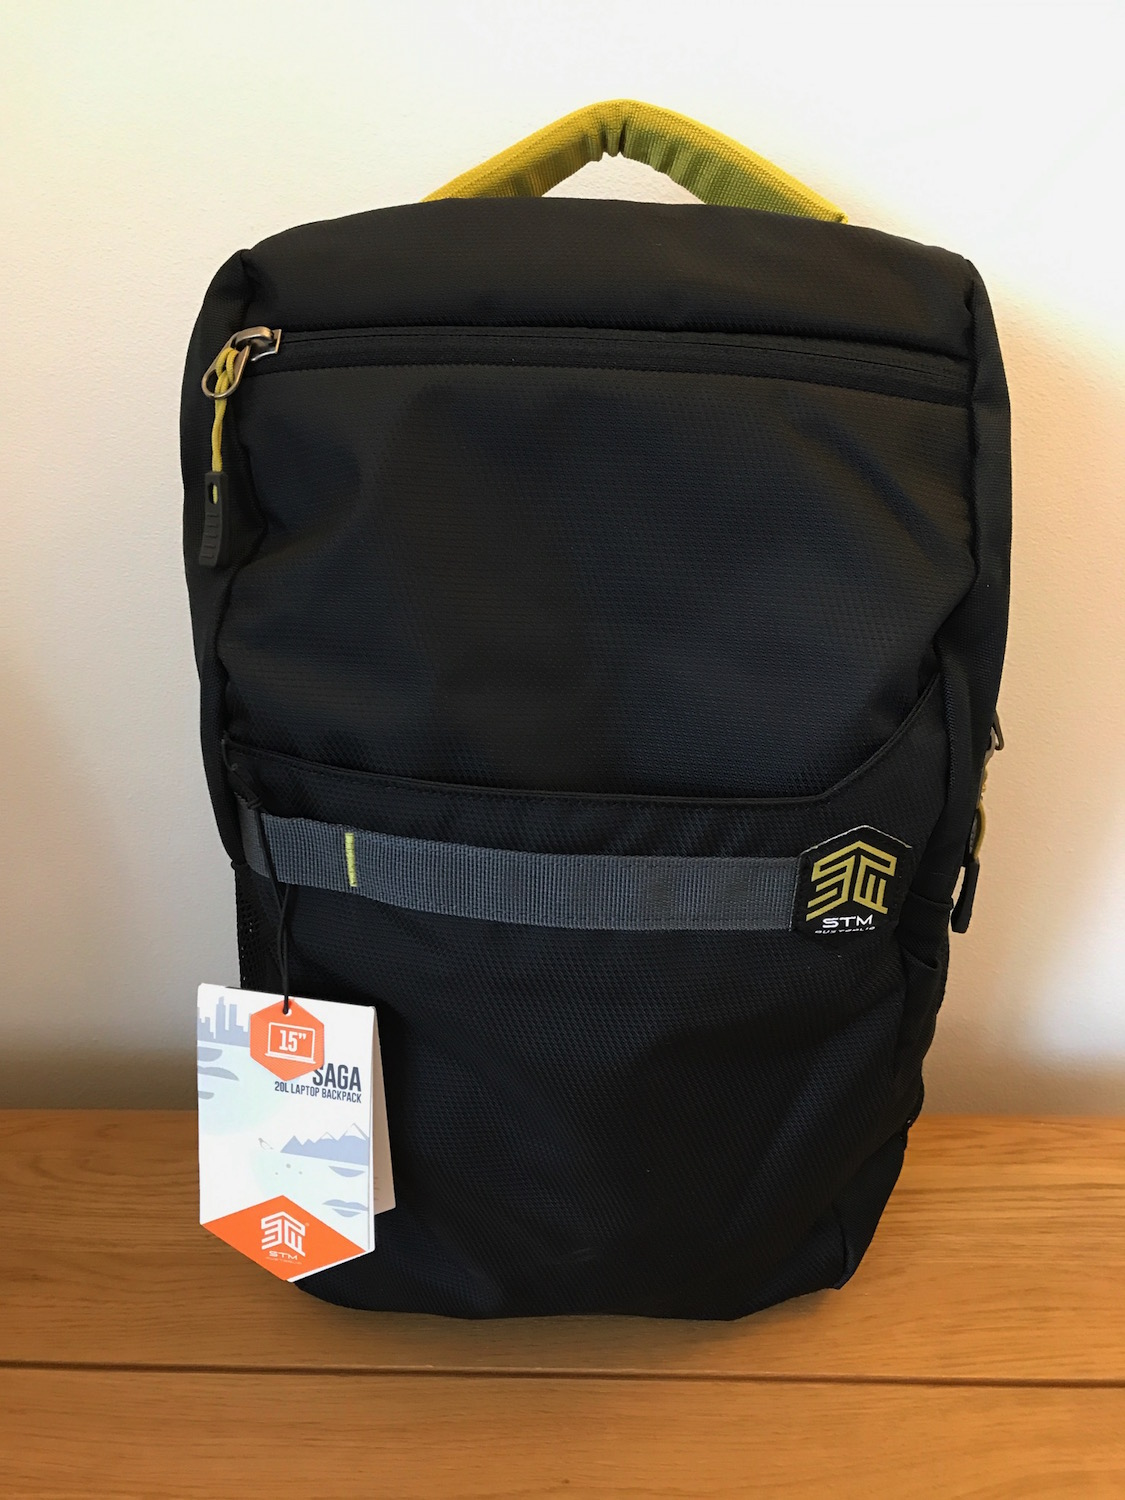 STM Saga backpack - front